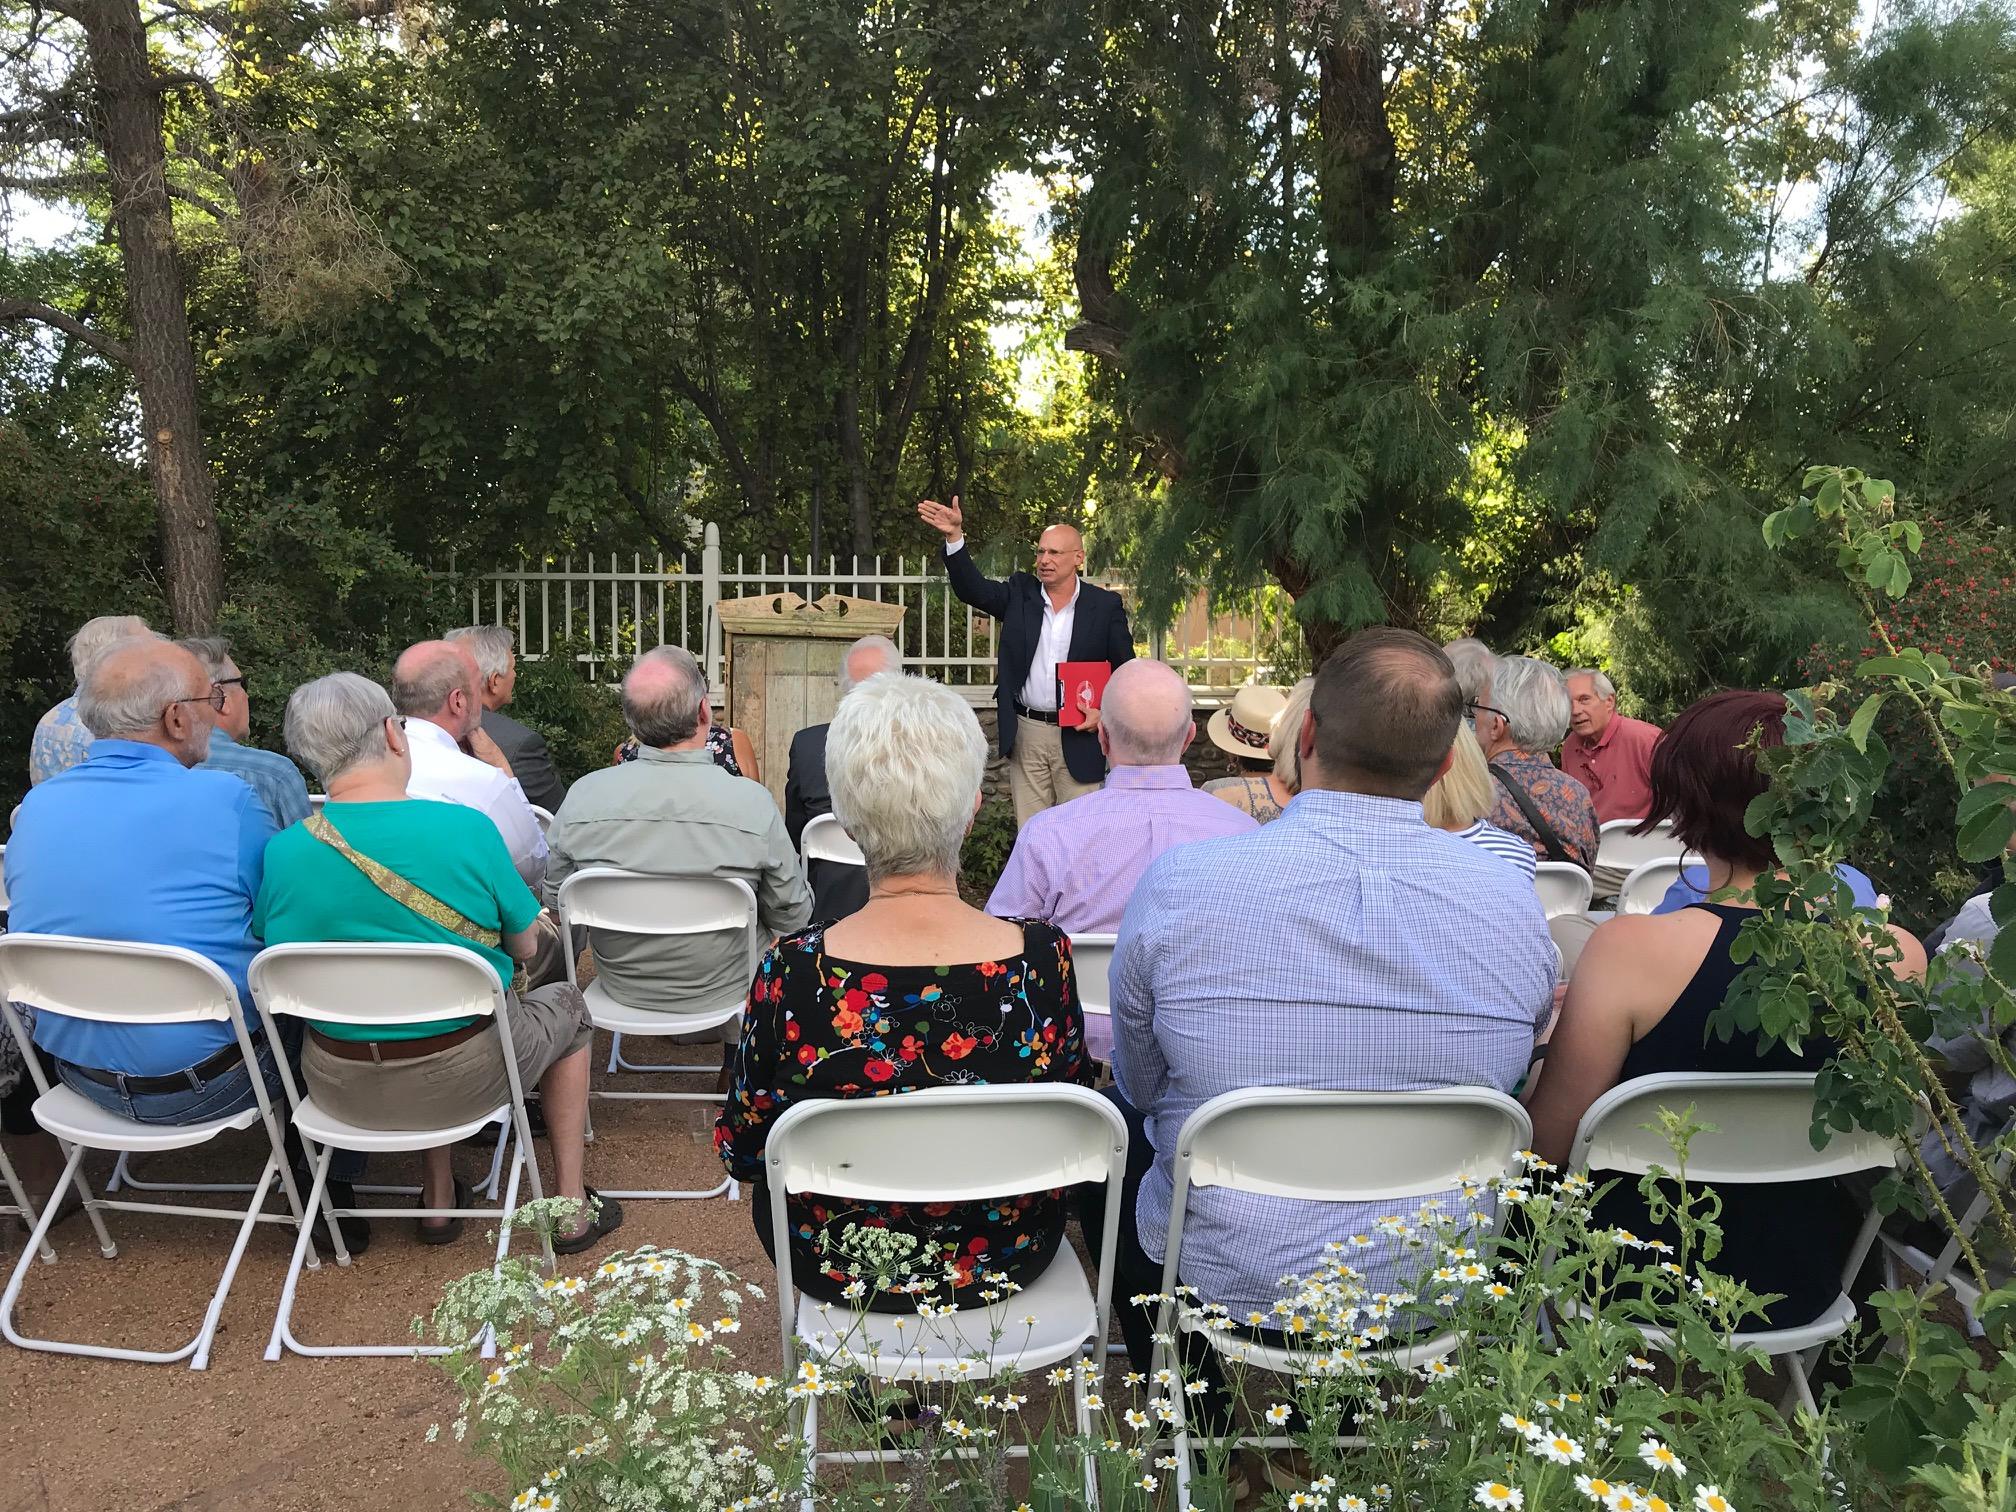 Image from the 2018 Garden Party & Members' Meeting with speaker Jeff Pappas